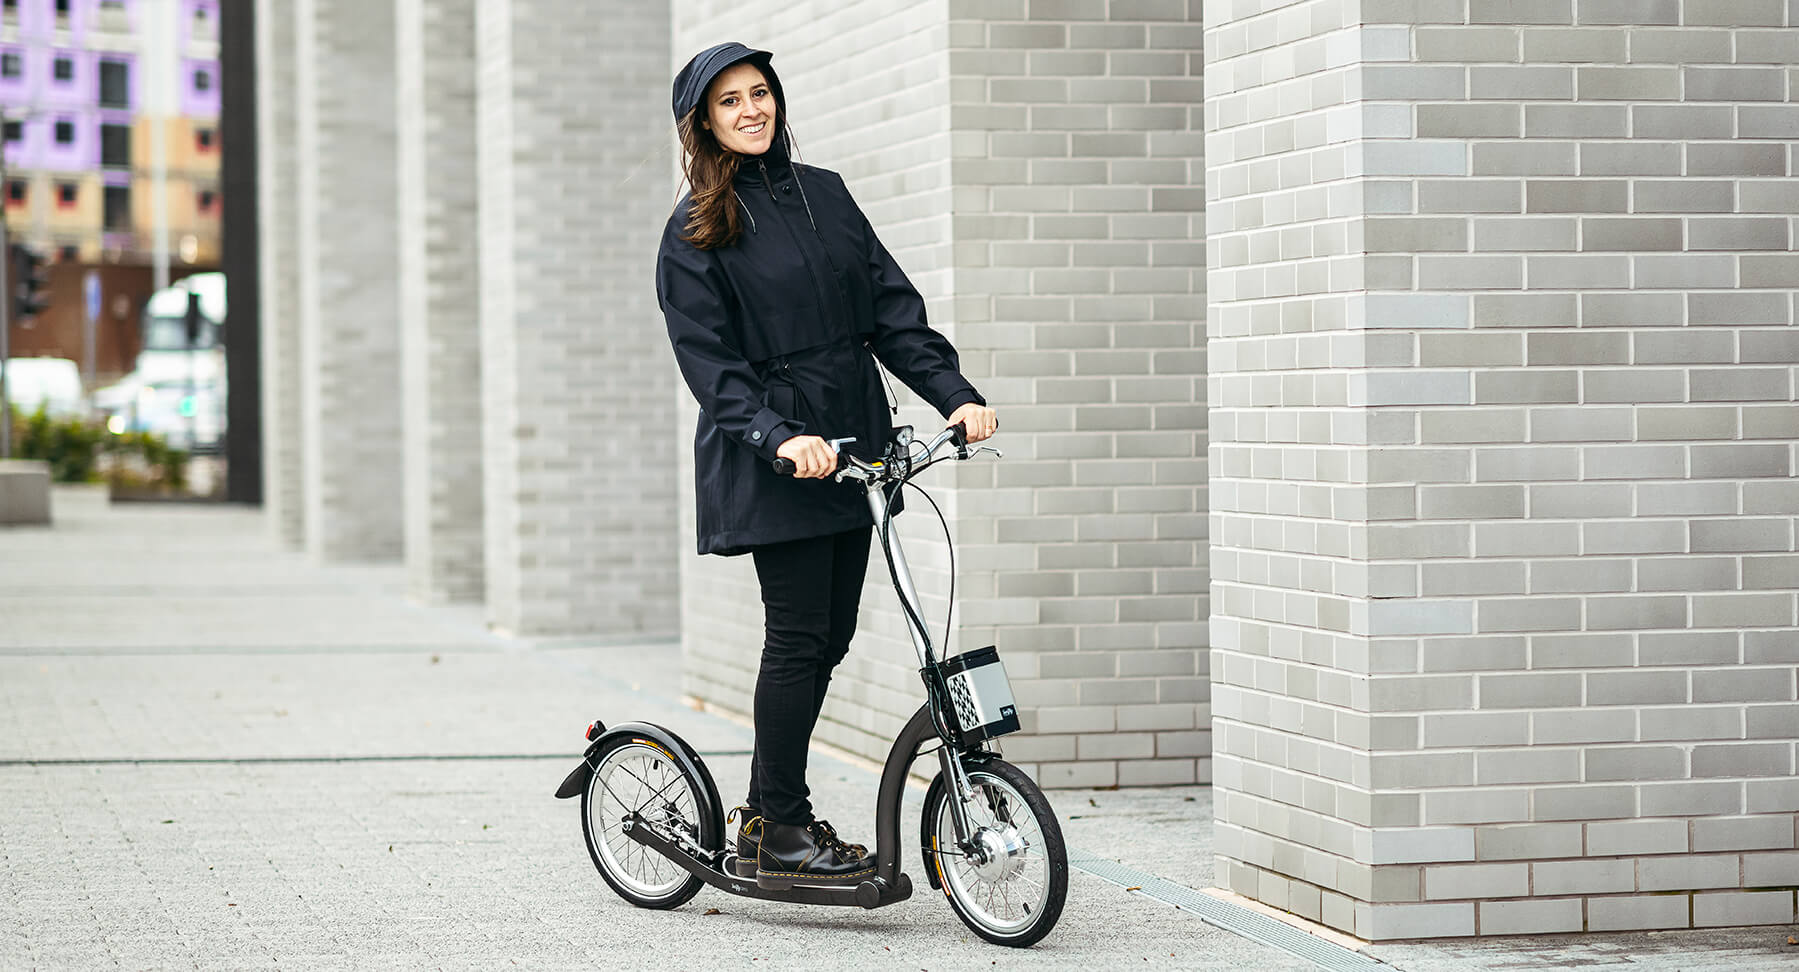 electric scooter, electric scooter for adults, adult electric scooter